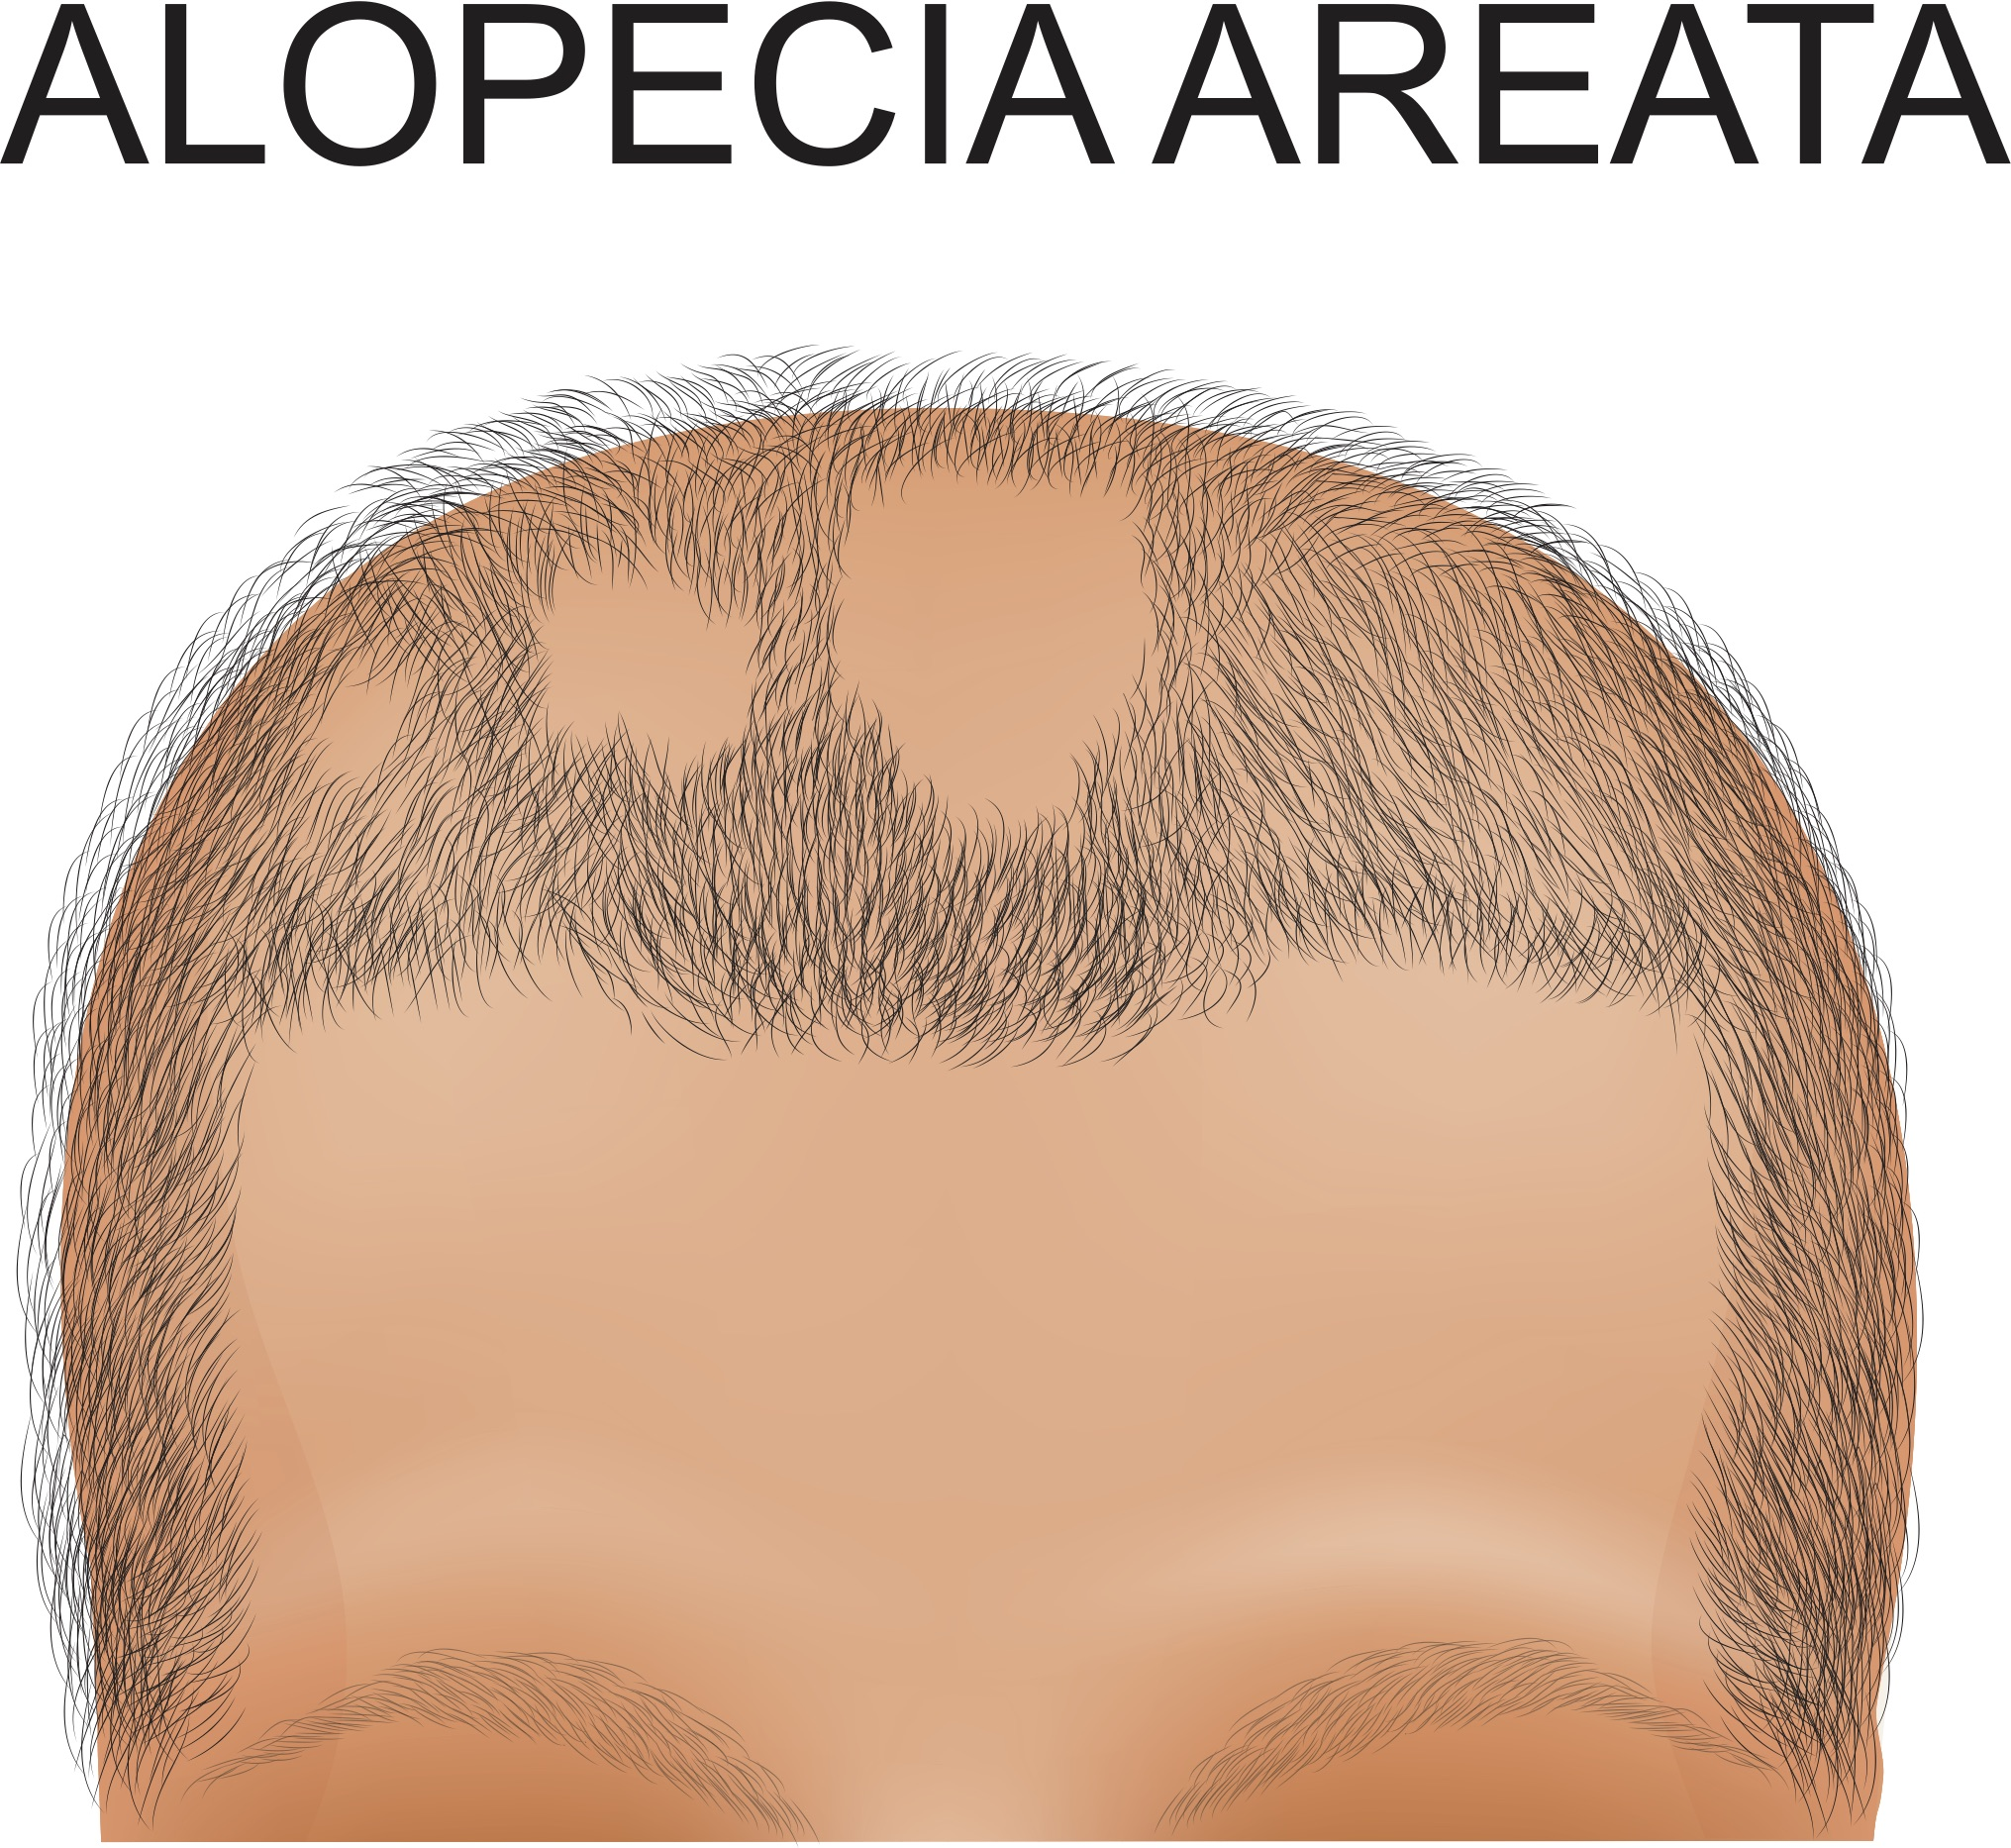 Alopecia Areata & Marijuana Information: Treat Alopecia Areata With Cannabis